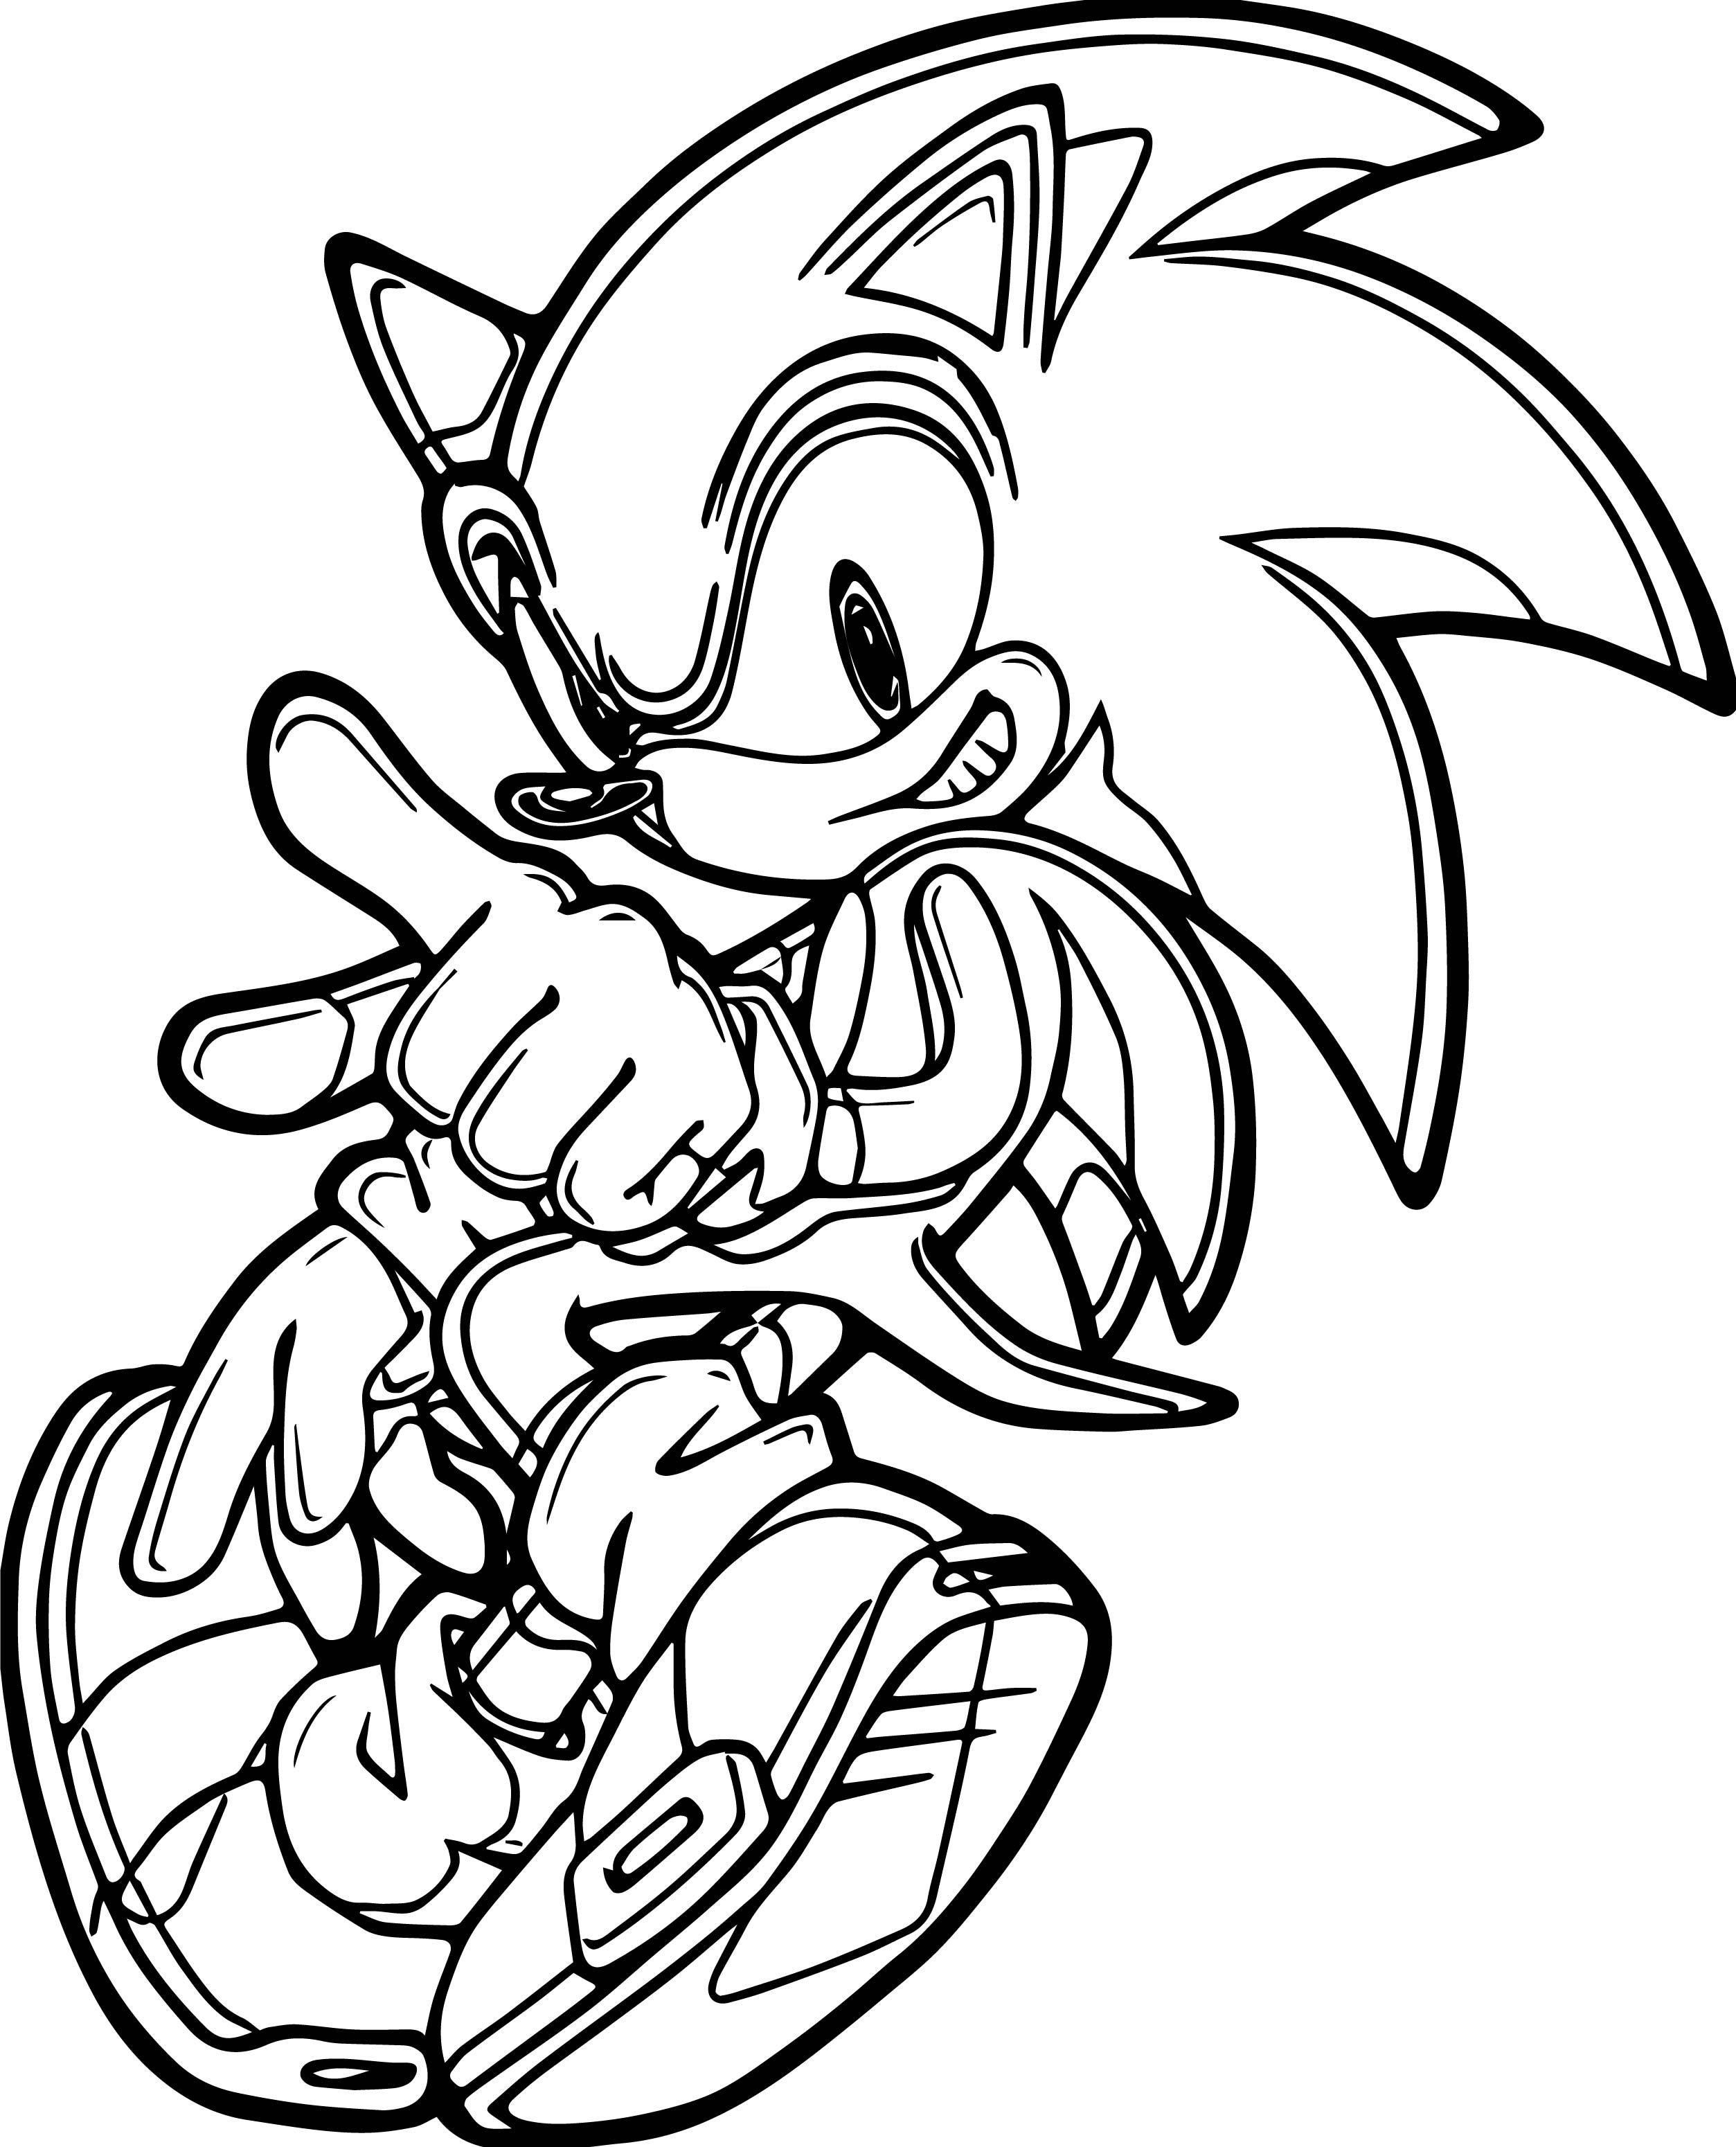 Sonic The Hedgehog Christmas Coloring Pages Hedgehog Colors Printable Coloring Book Power Rangers Coloring Pages